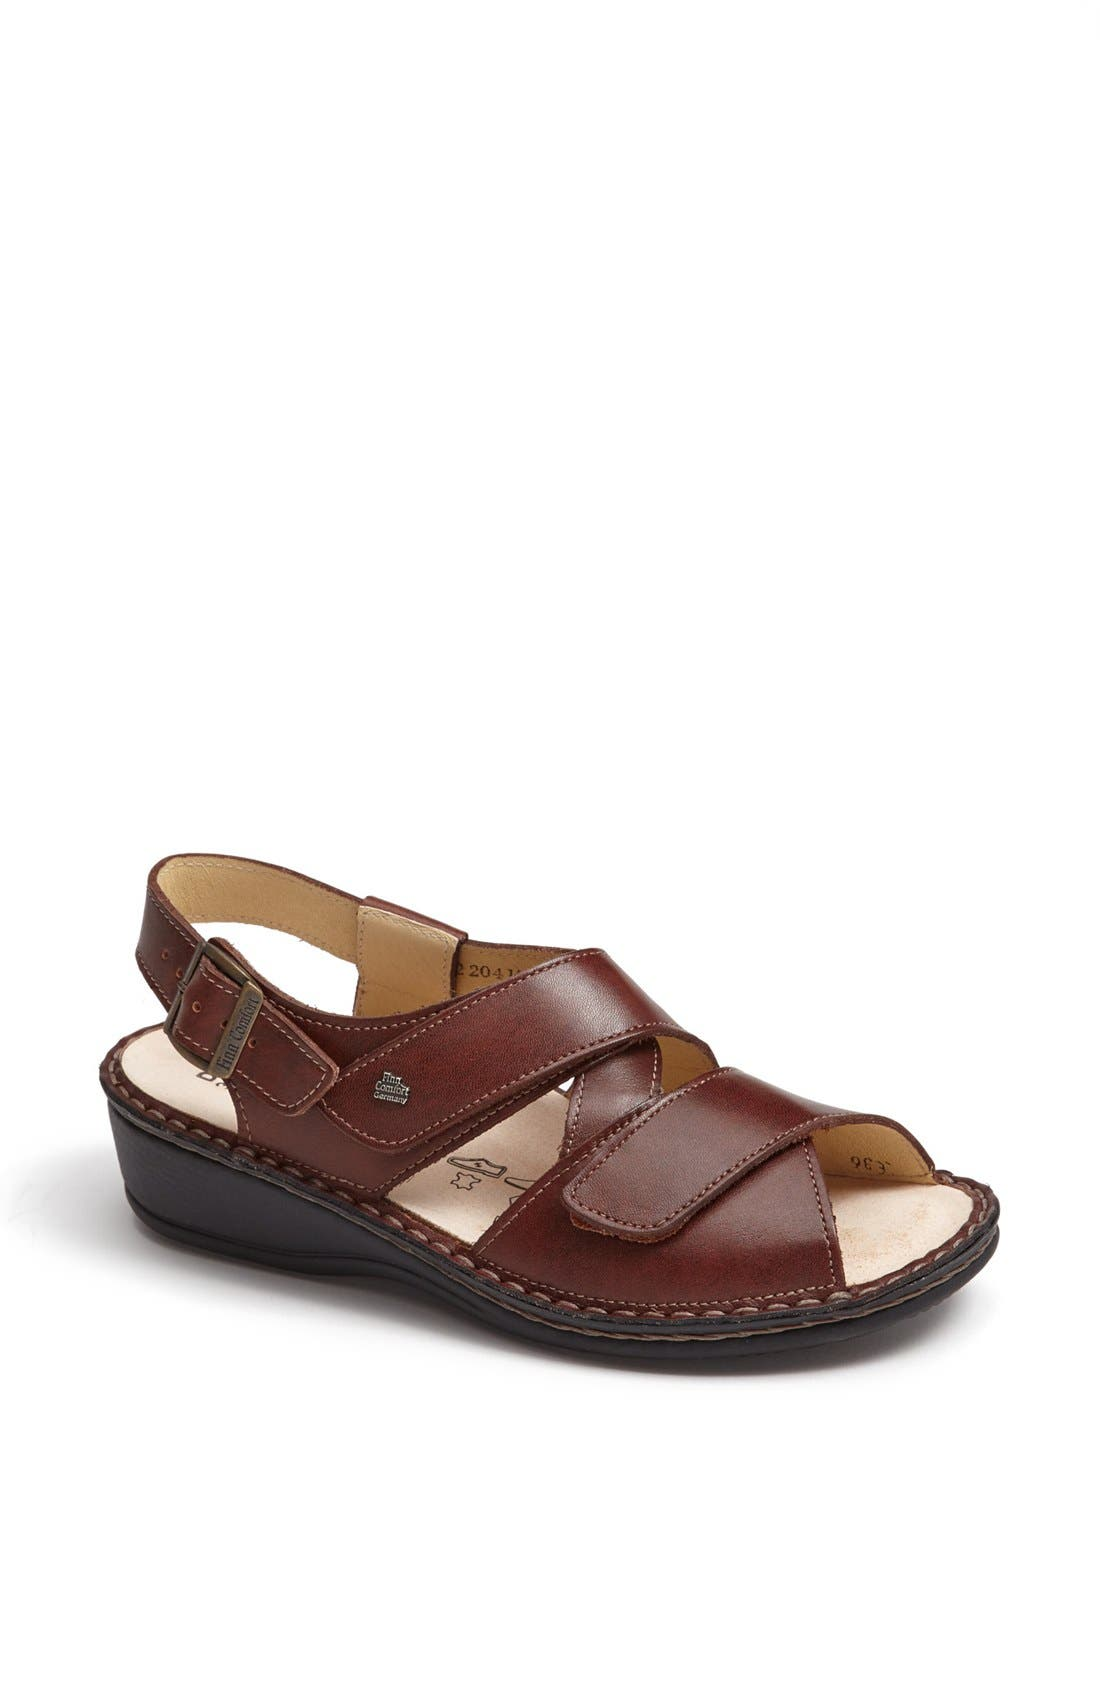 'Jersey' Sandal,                             Main thumbnail 1, color,                             BRANDY COUNTRY